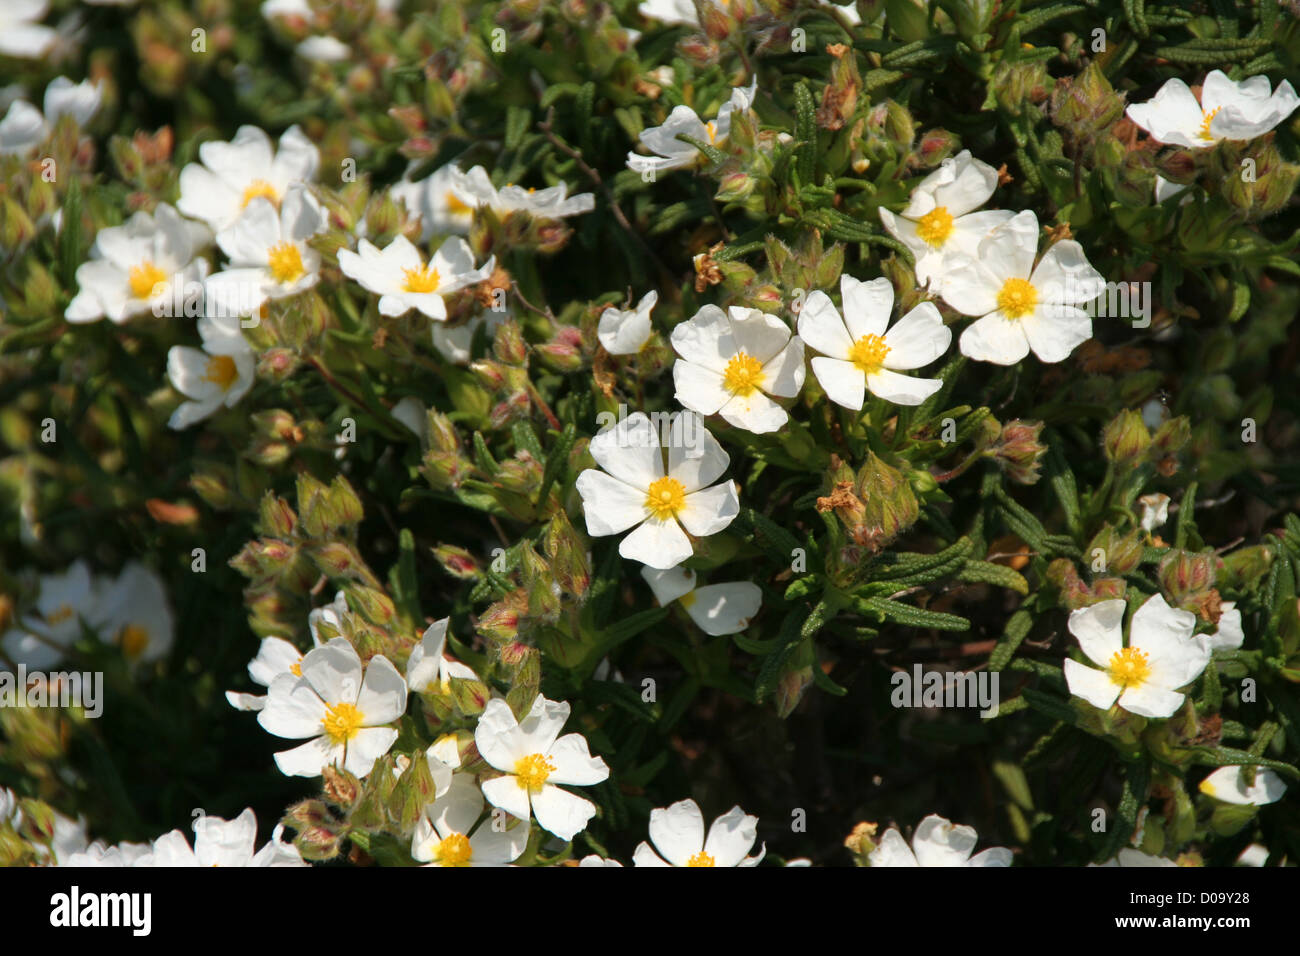 White Rock Rose Flowers Stock Photo 51849904 Alamy